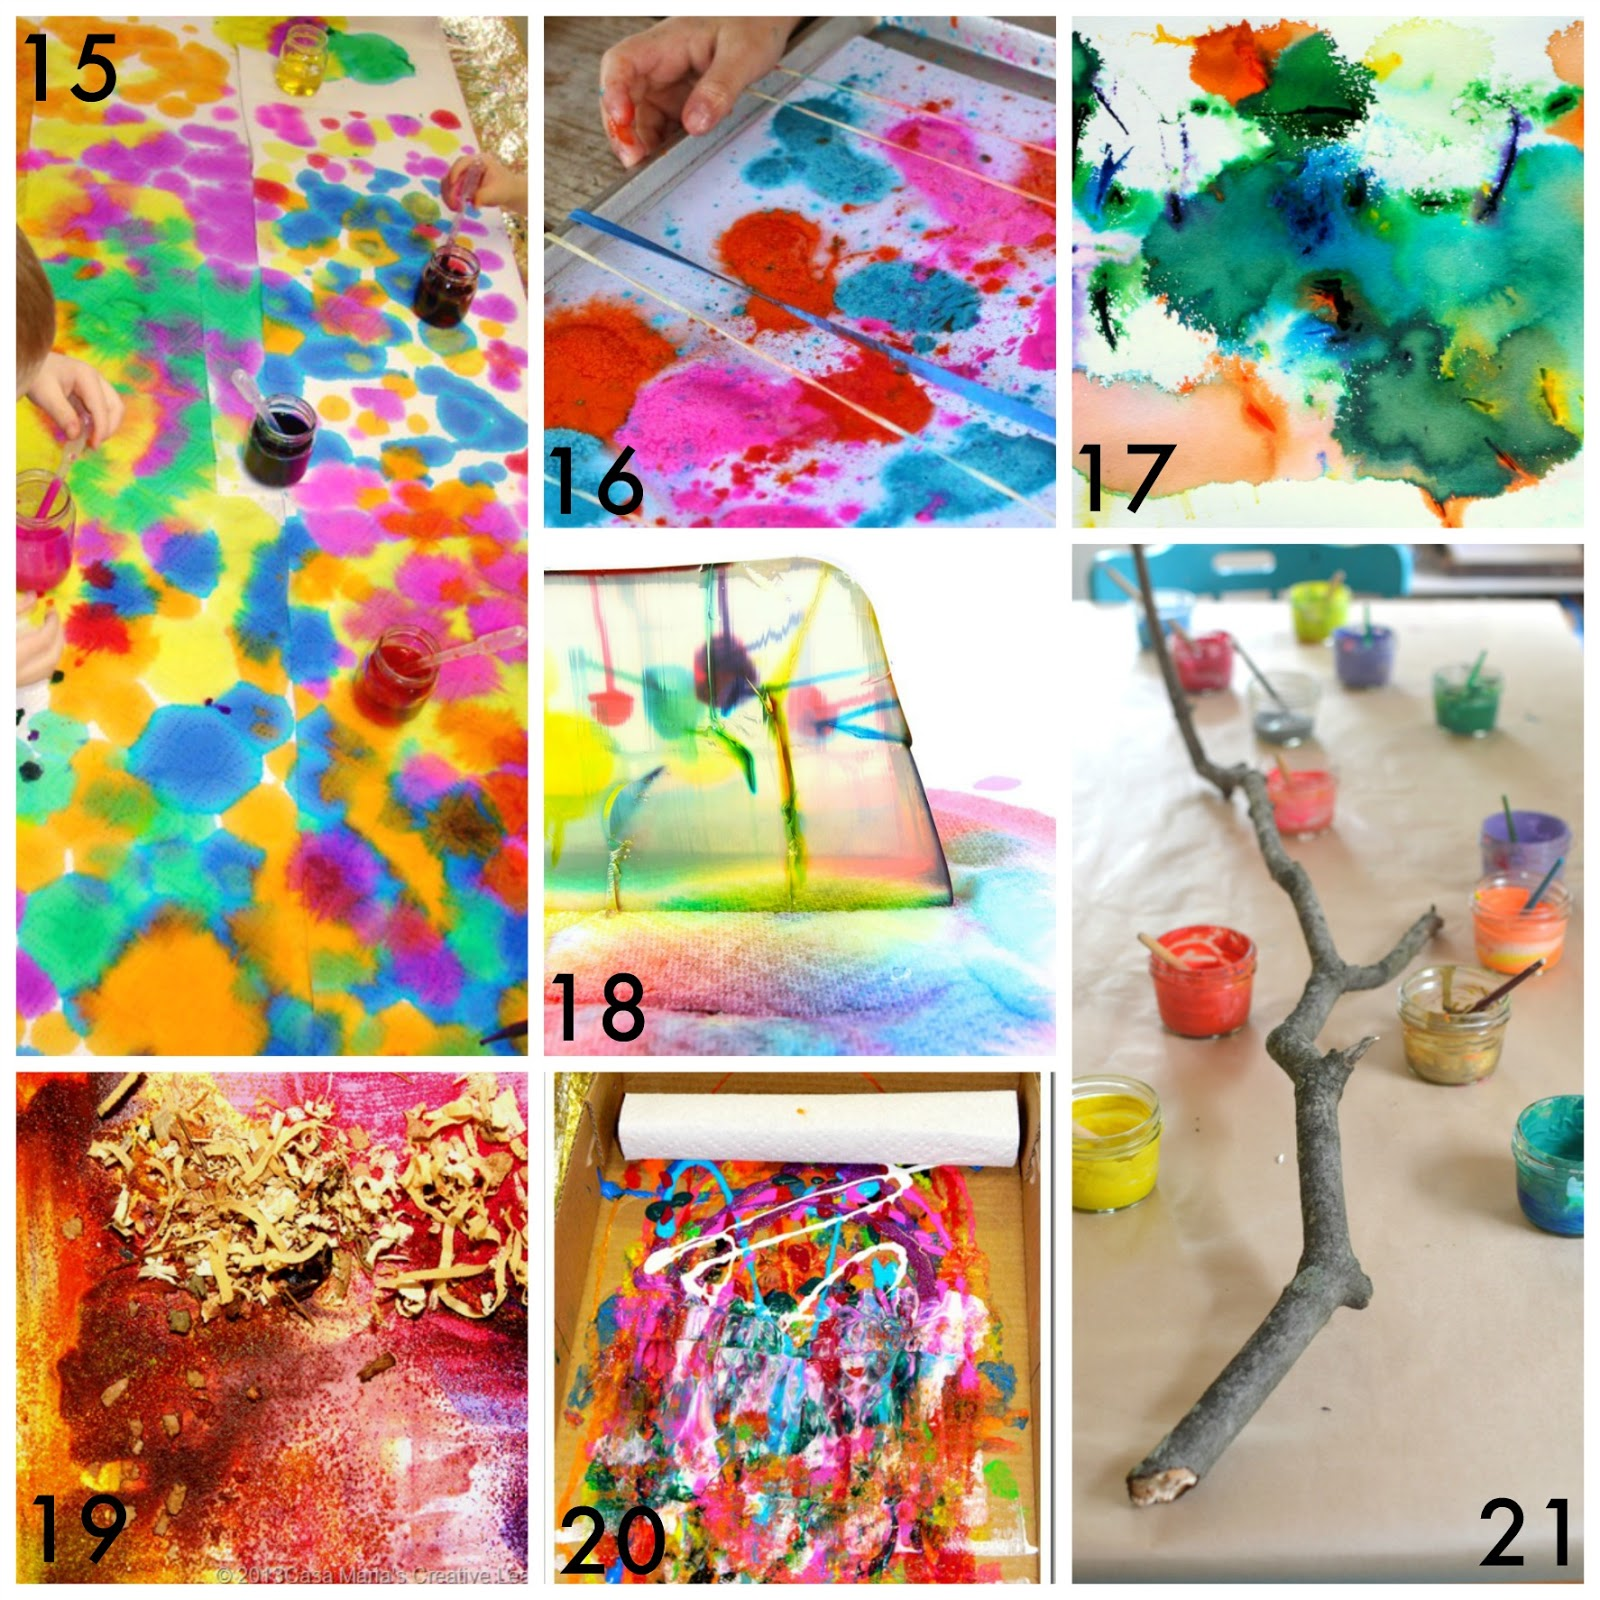 50 easy process art activities for kids from fun at home with kids - Kids Images Free